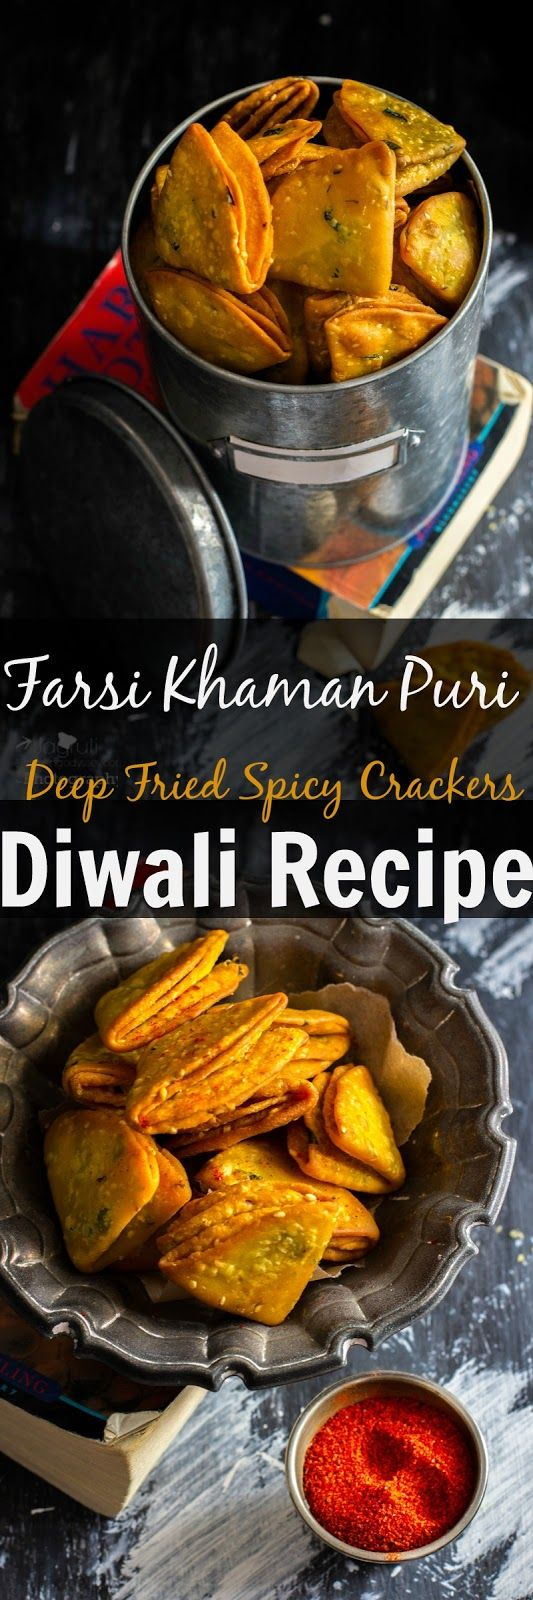 Jagruti's Cooking Odyssey: Farsi Khaman Puri / Poori - Deep Fried Spicy Crackers #Diwalispecial #Diwalisnacks #Diwalifood